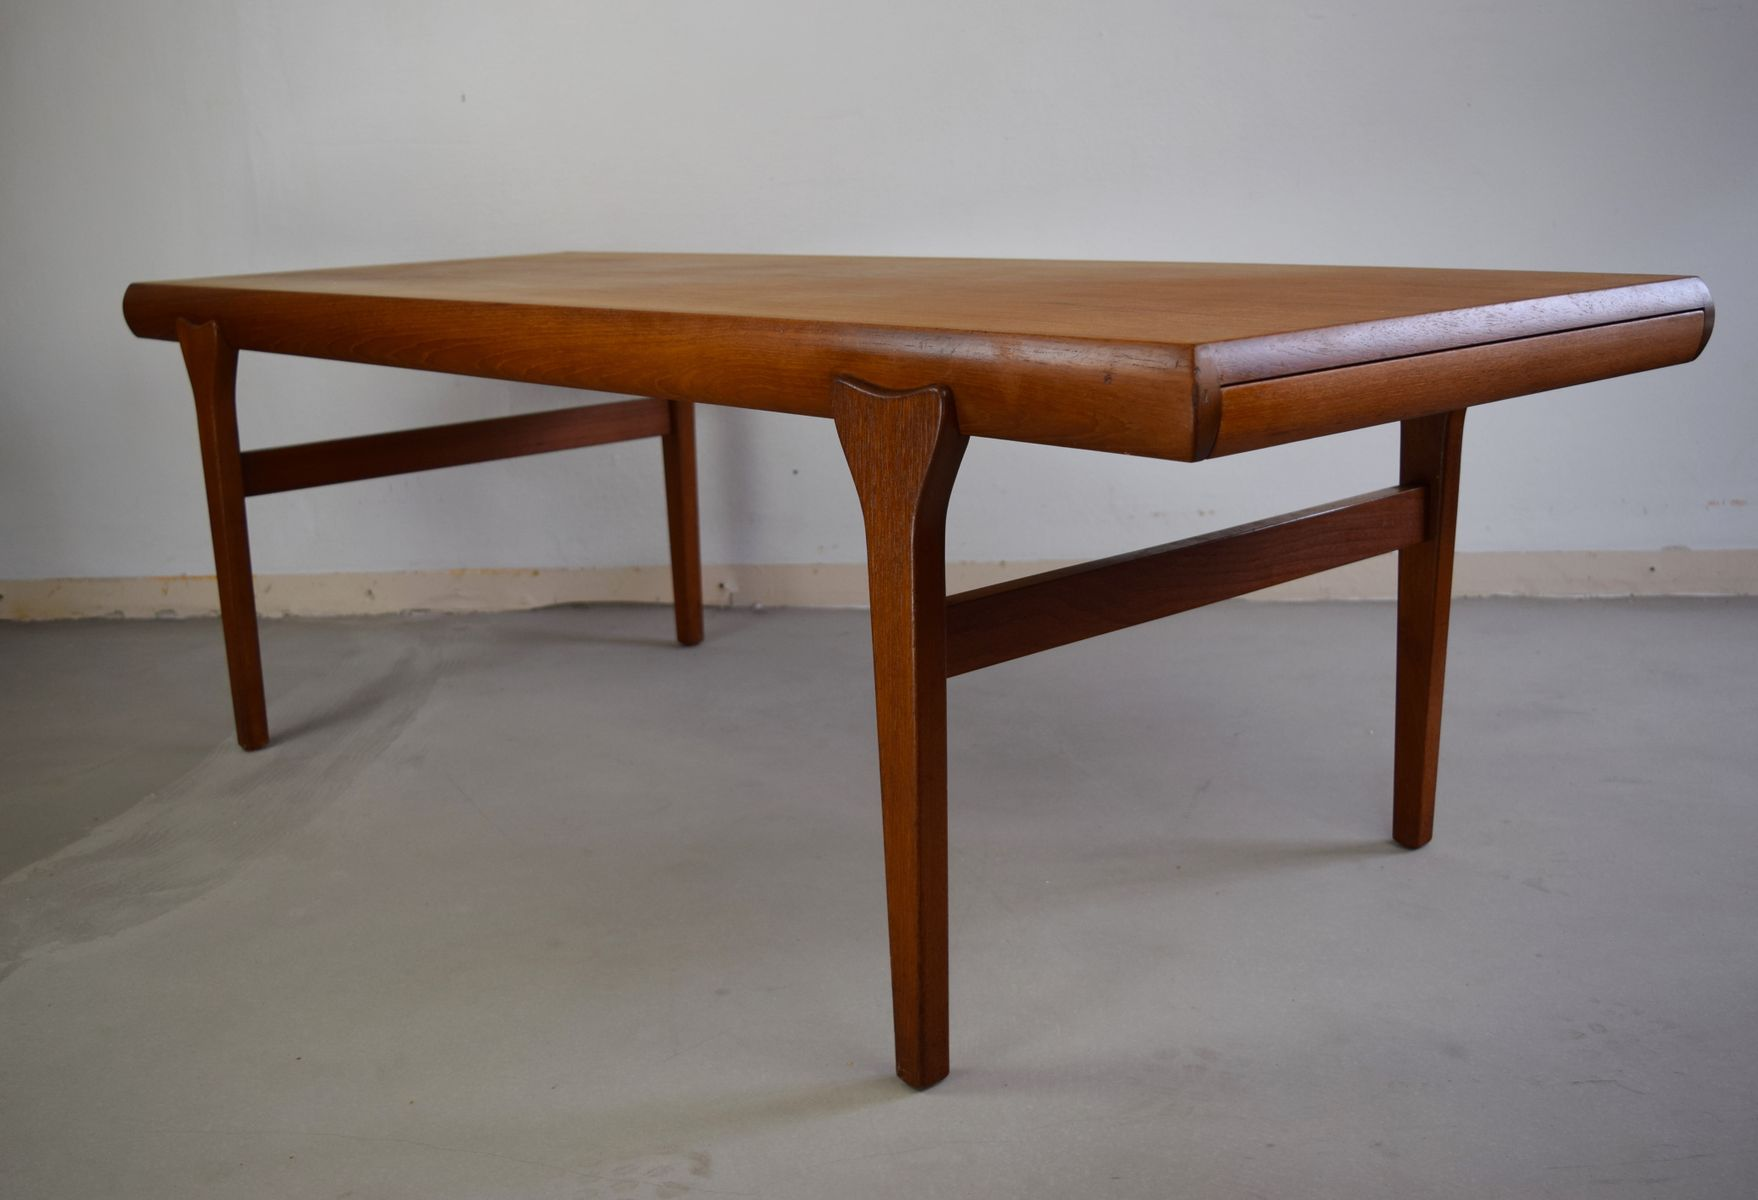 Vintage Teak Coffee Table by Johannes Andersen for CFC Silkeborg